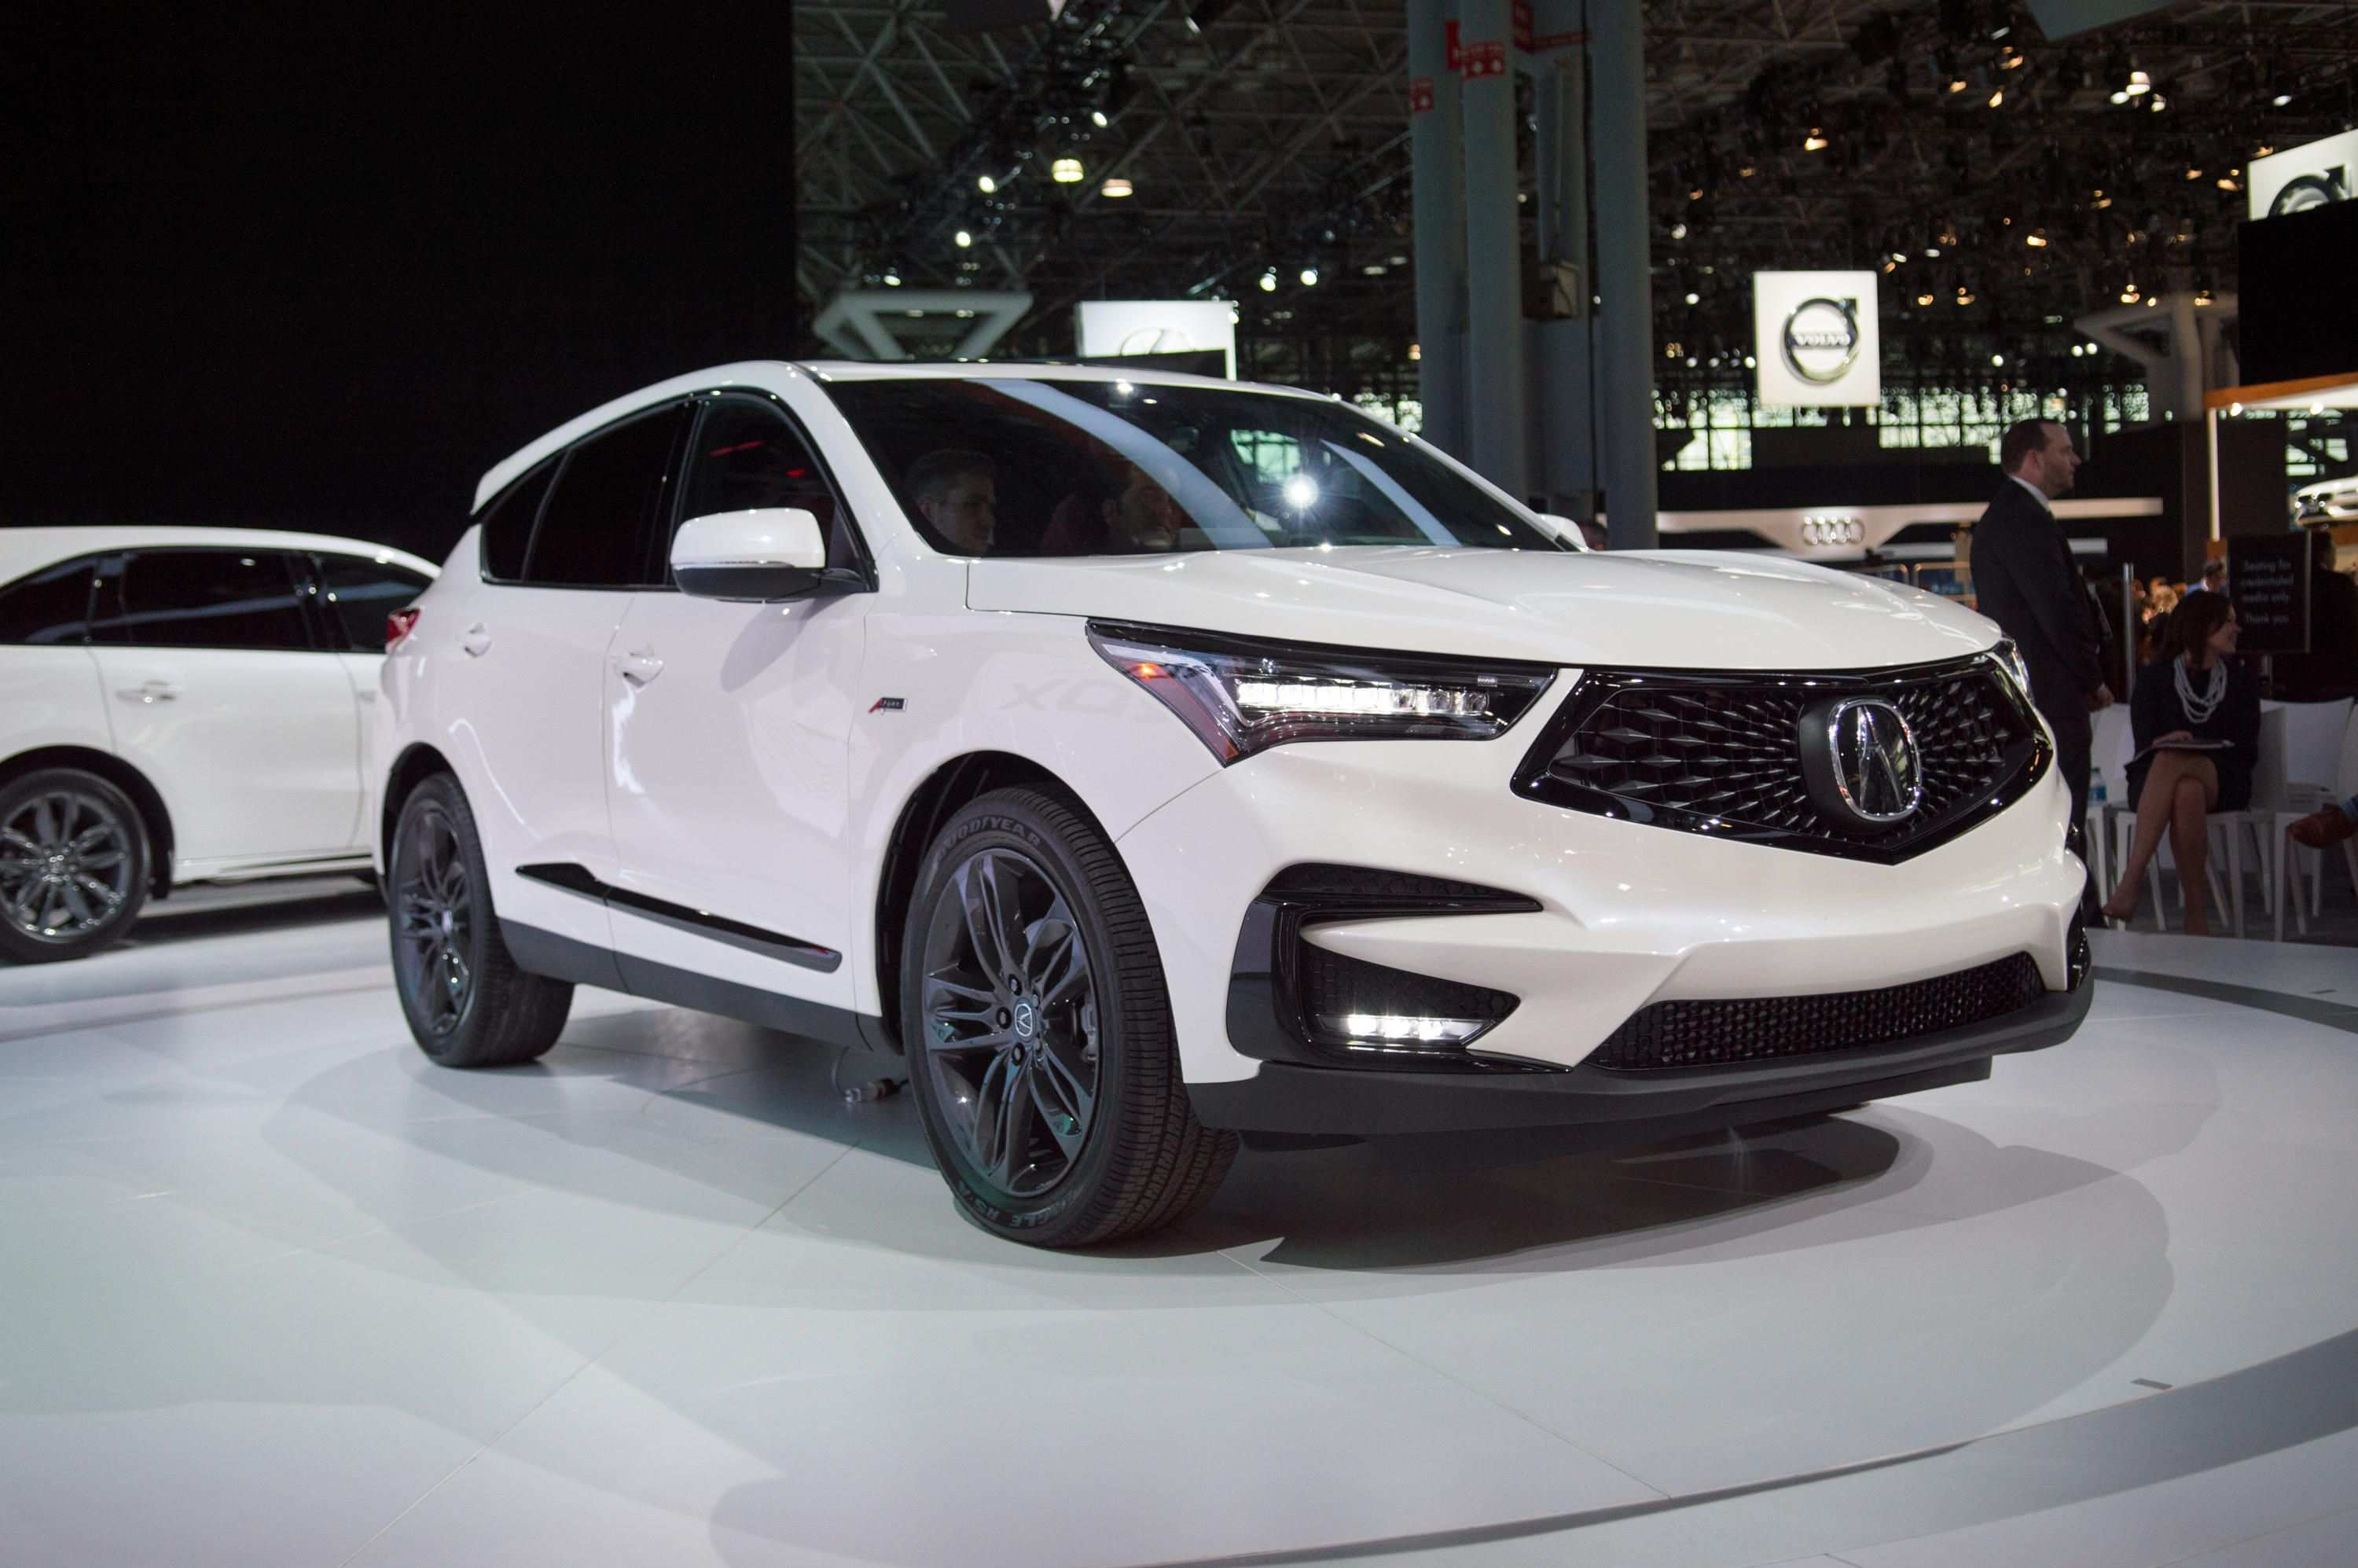 90 Concept of Best 2019 Acura Rdx Aspec Price And Release Date Reviews for Best 2019 Acura Rdx Aspec Price And Release Date